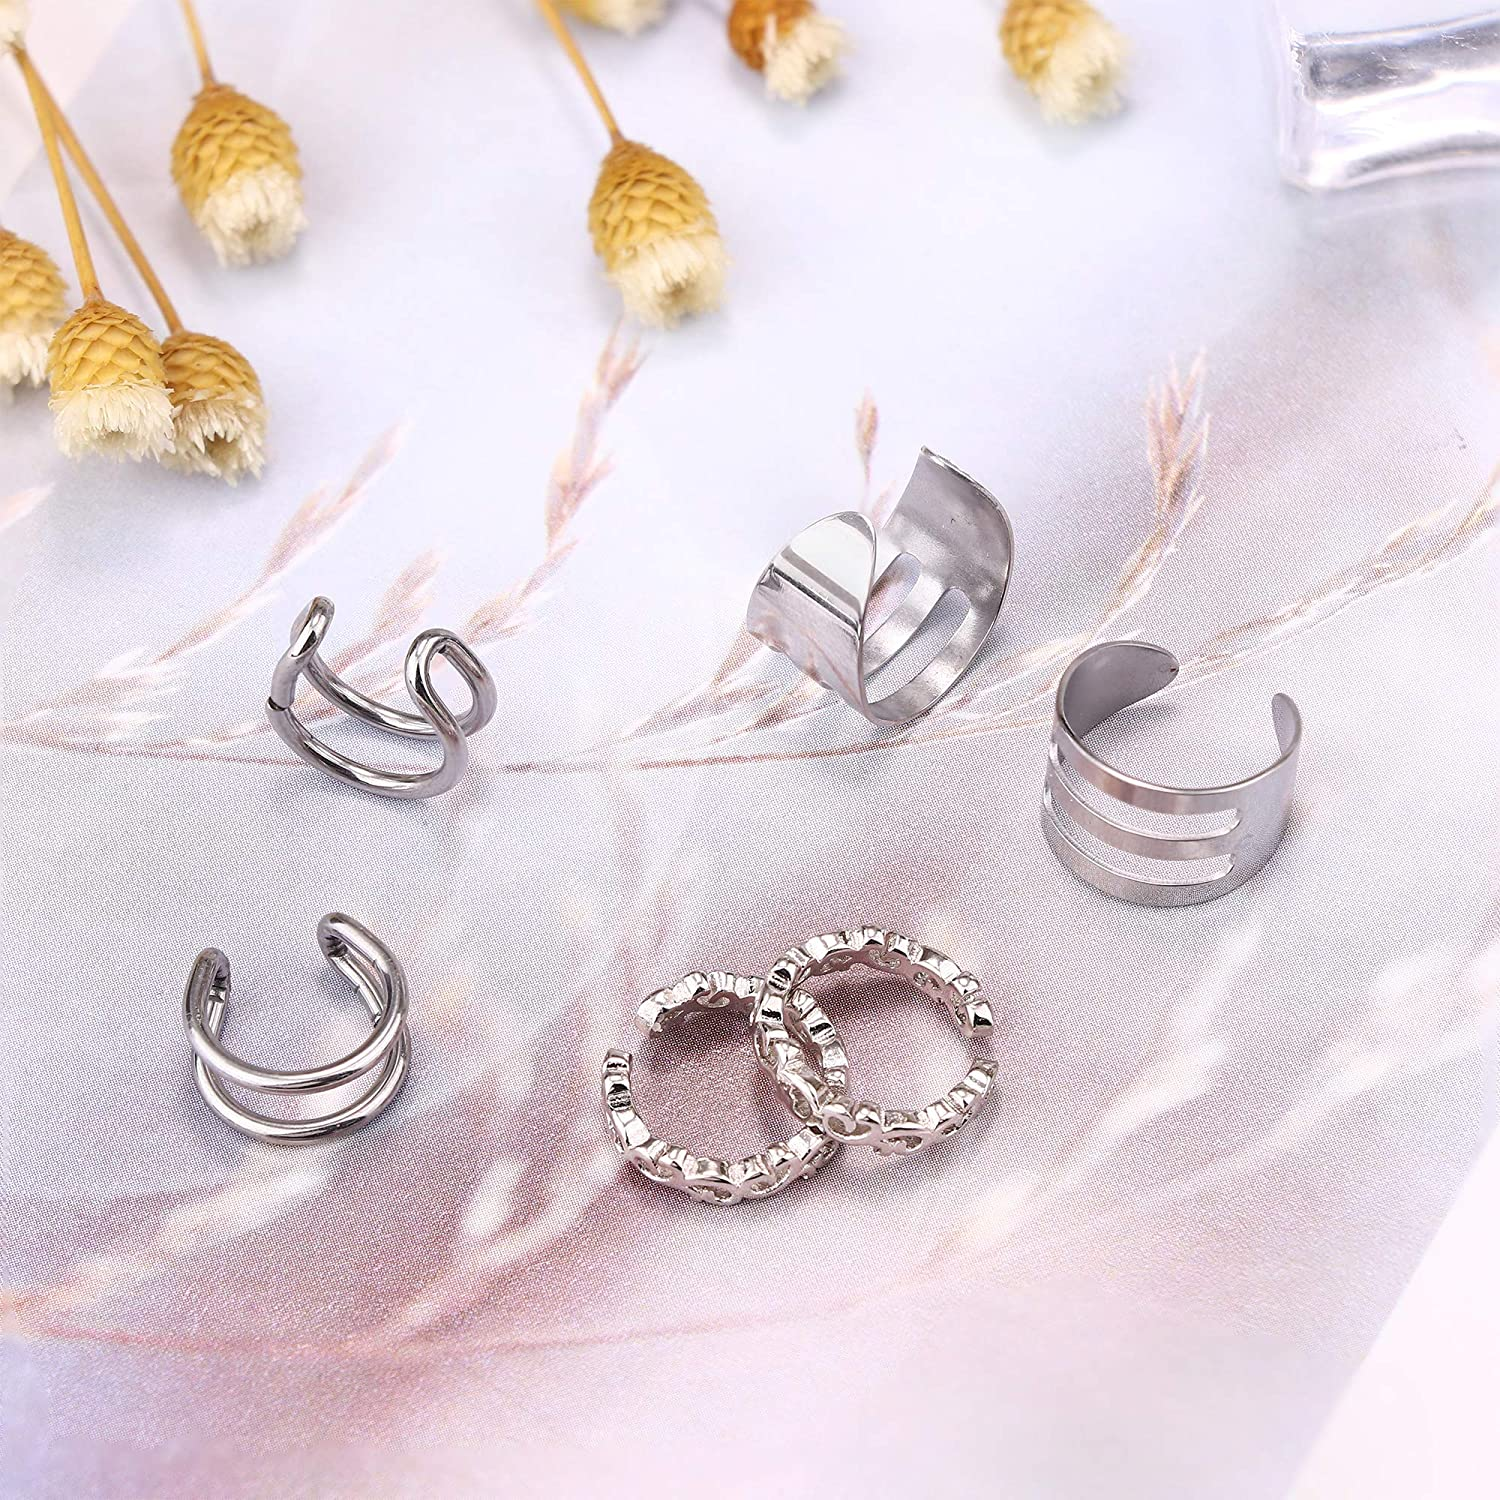 Hanpabum 23Pcs Stainless Steel Ear Cuff Fake Lip Helix Cartilage Clip On Wrap Earrings Fake Nose Ring Non-Piercing Adjustable